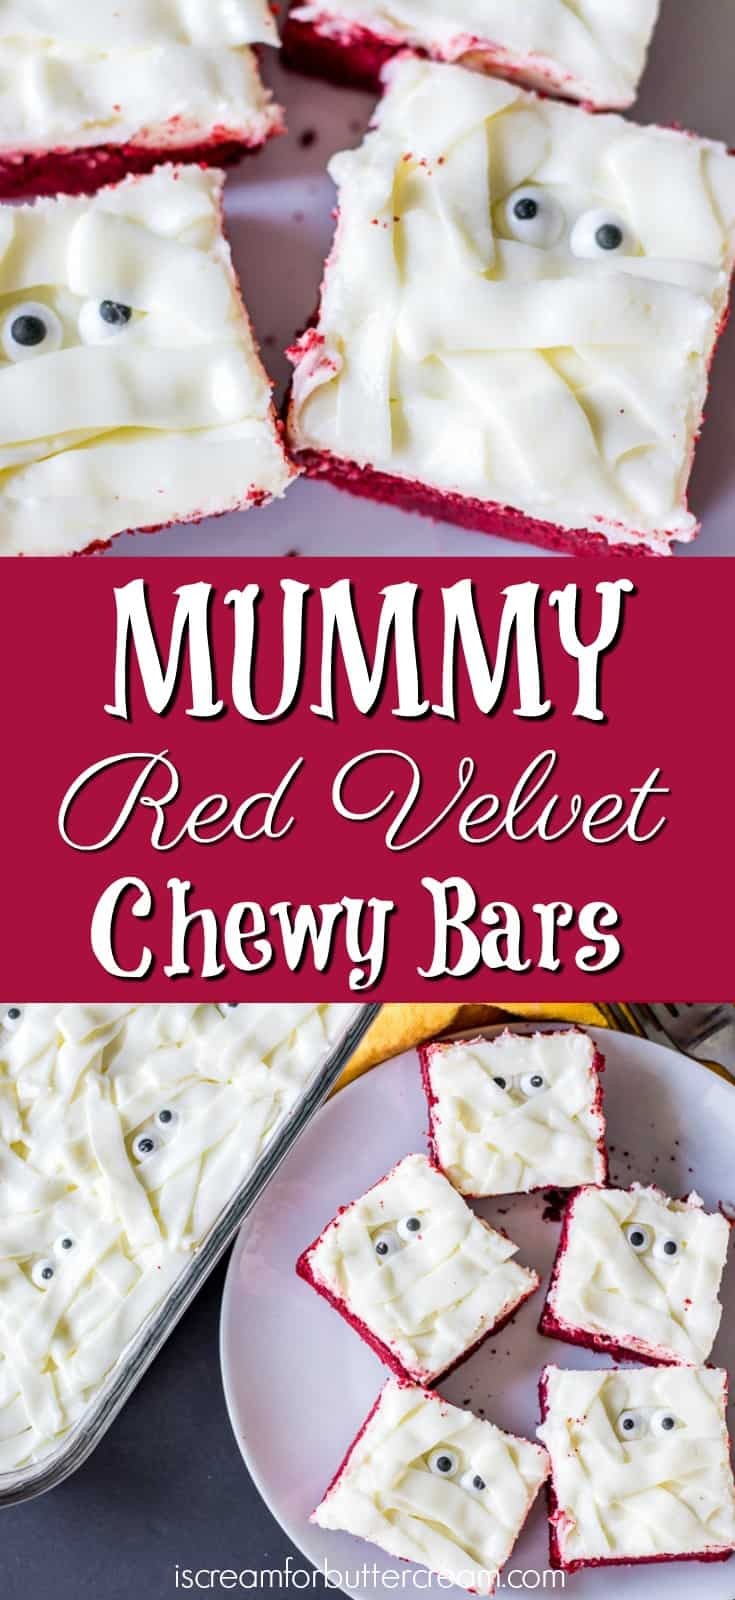 Mummy Red Velvet Chewy Bars